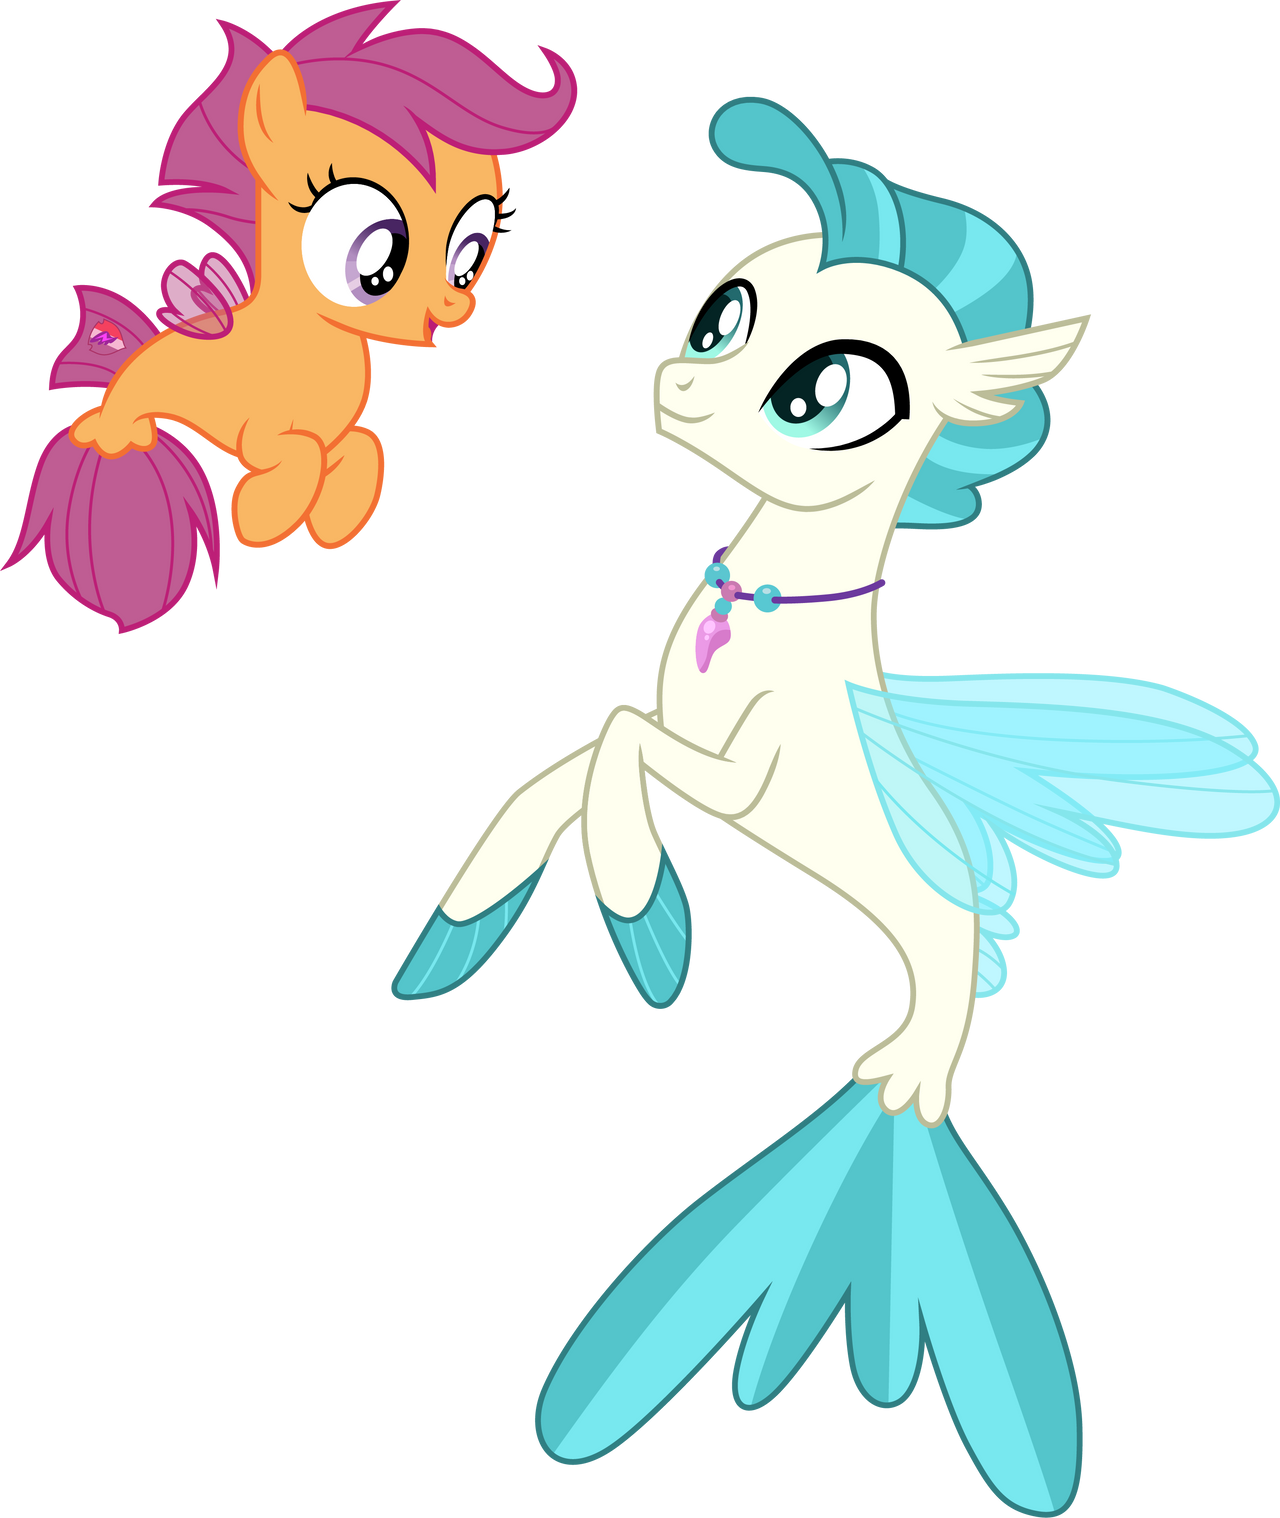 Scootaloo And Terramar Under The Sea By Cloudyglow On Deviantart A subreddit dedicated to running macos on non official apple hardware. scootaloo and terramar under the sea by